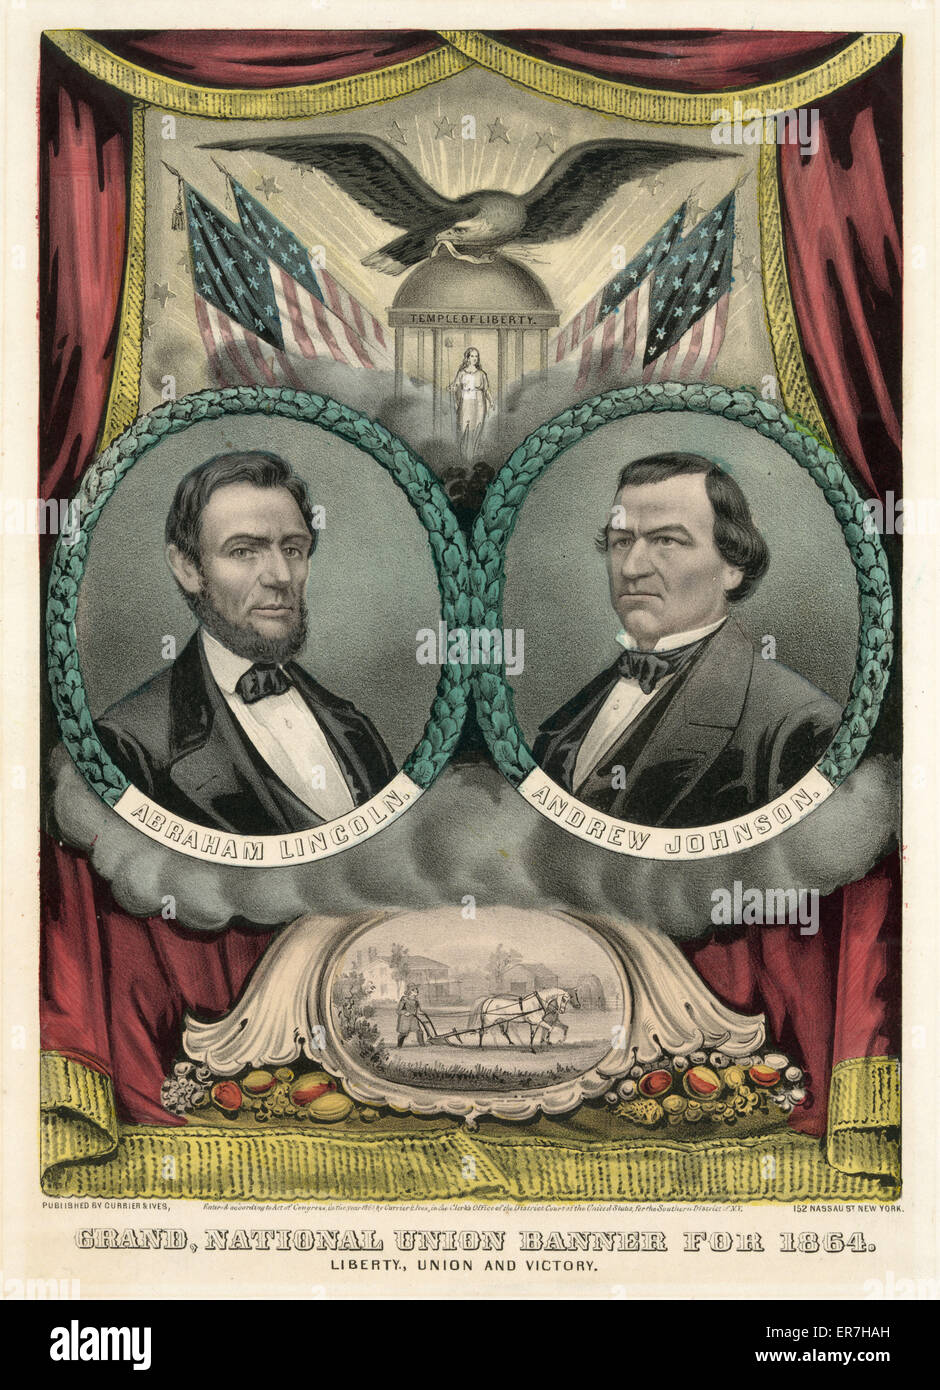 Grand national union banner for 1864. Liberty, union and victory. Print shows a campaign banner for 1864 Republican - Stock Image